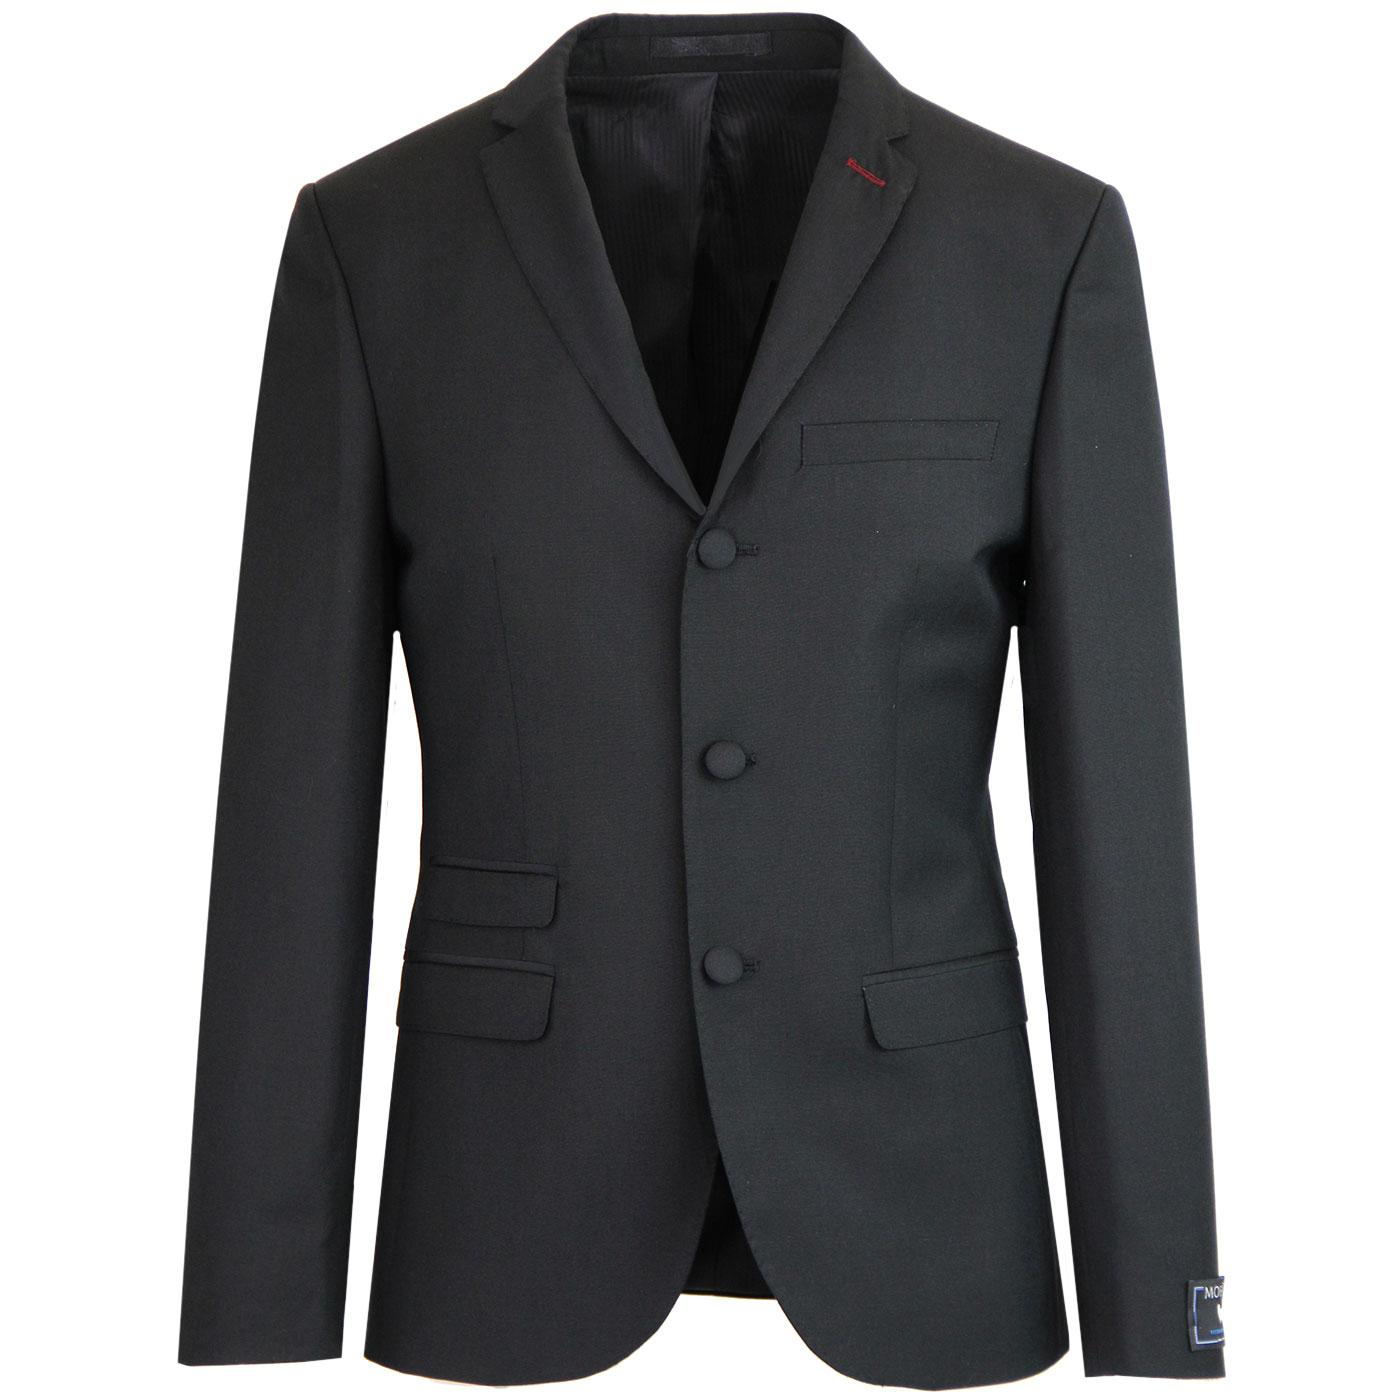 MADCAP ENGLAND 3 Button Mohair Suit Blazer (Black)